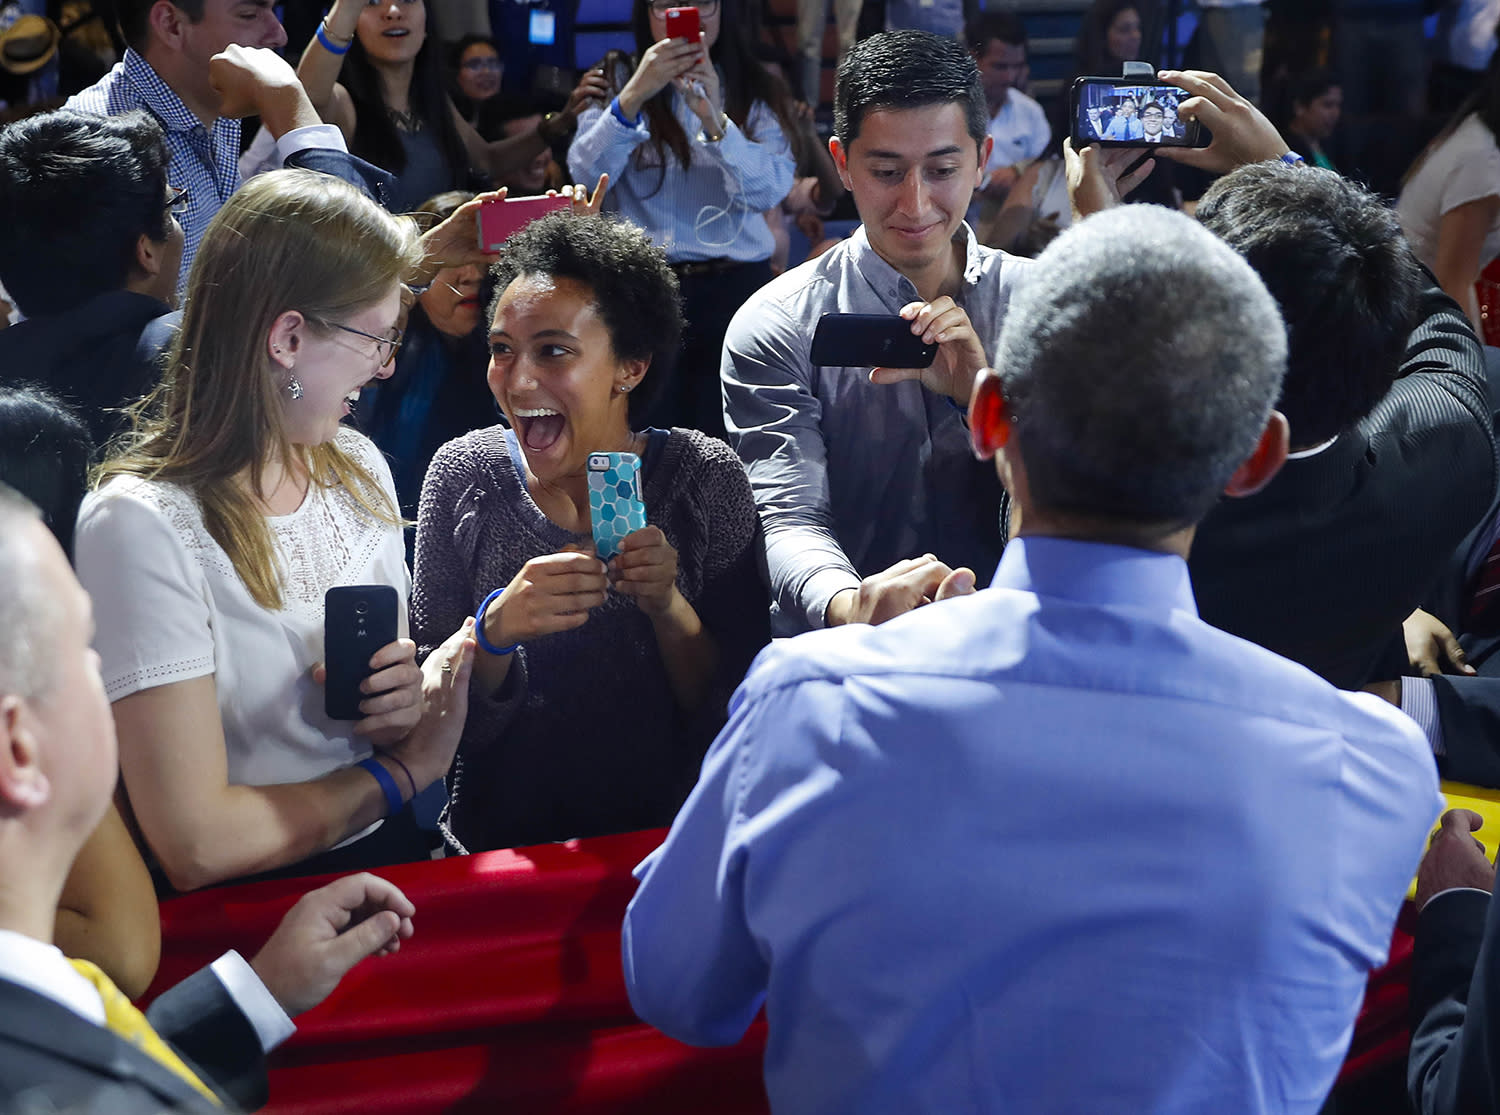 <p>Two women react after greeting U.S. President Barack Obama, back to camera, who earlier spoke at a town hall with Young Leaders of the Americas Initiative (YLAI) in Lima, Peru, Nov. 19, 2016. (Photo: Pablo Martinez Monsivais/AP) </p>